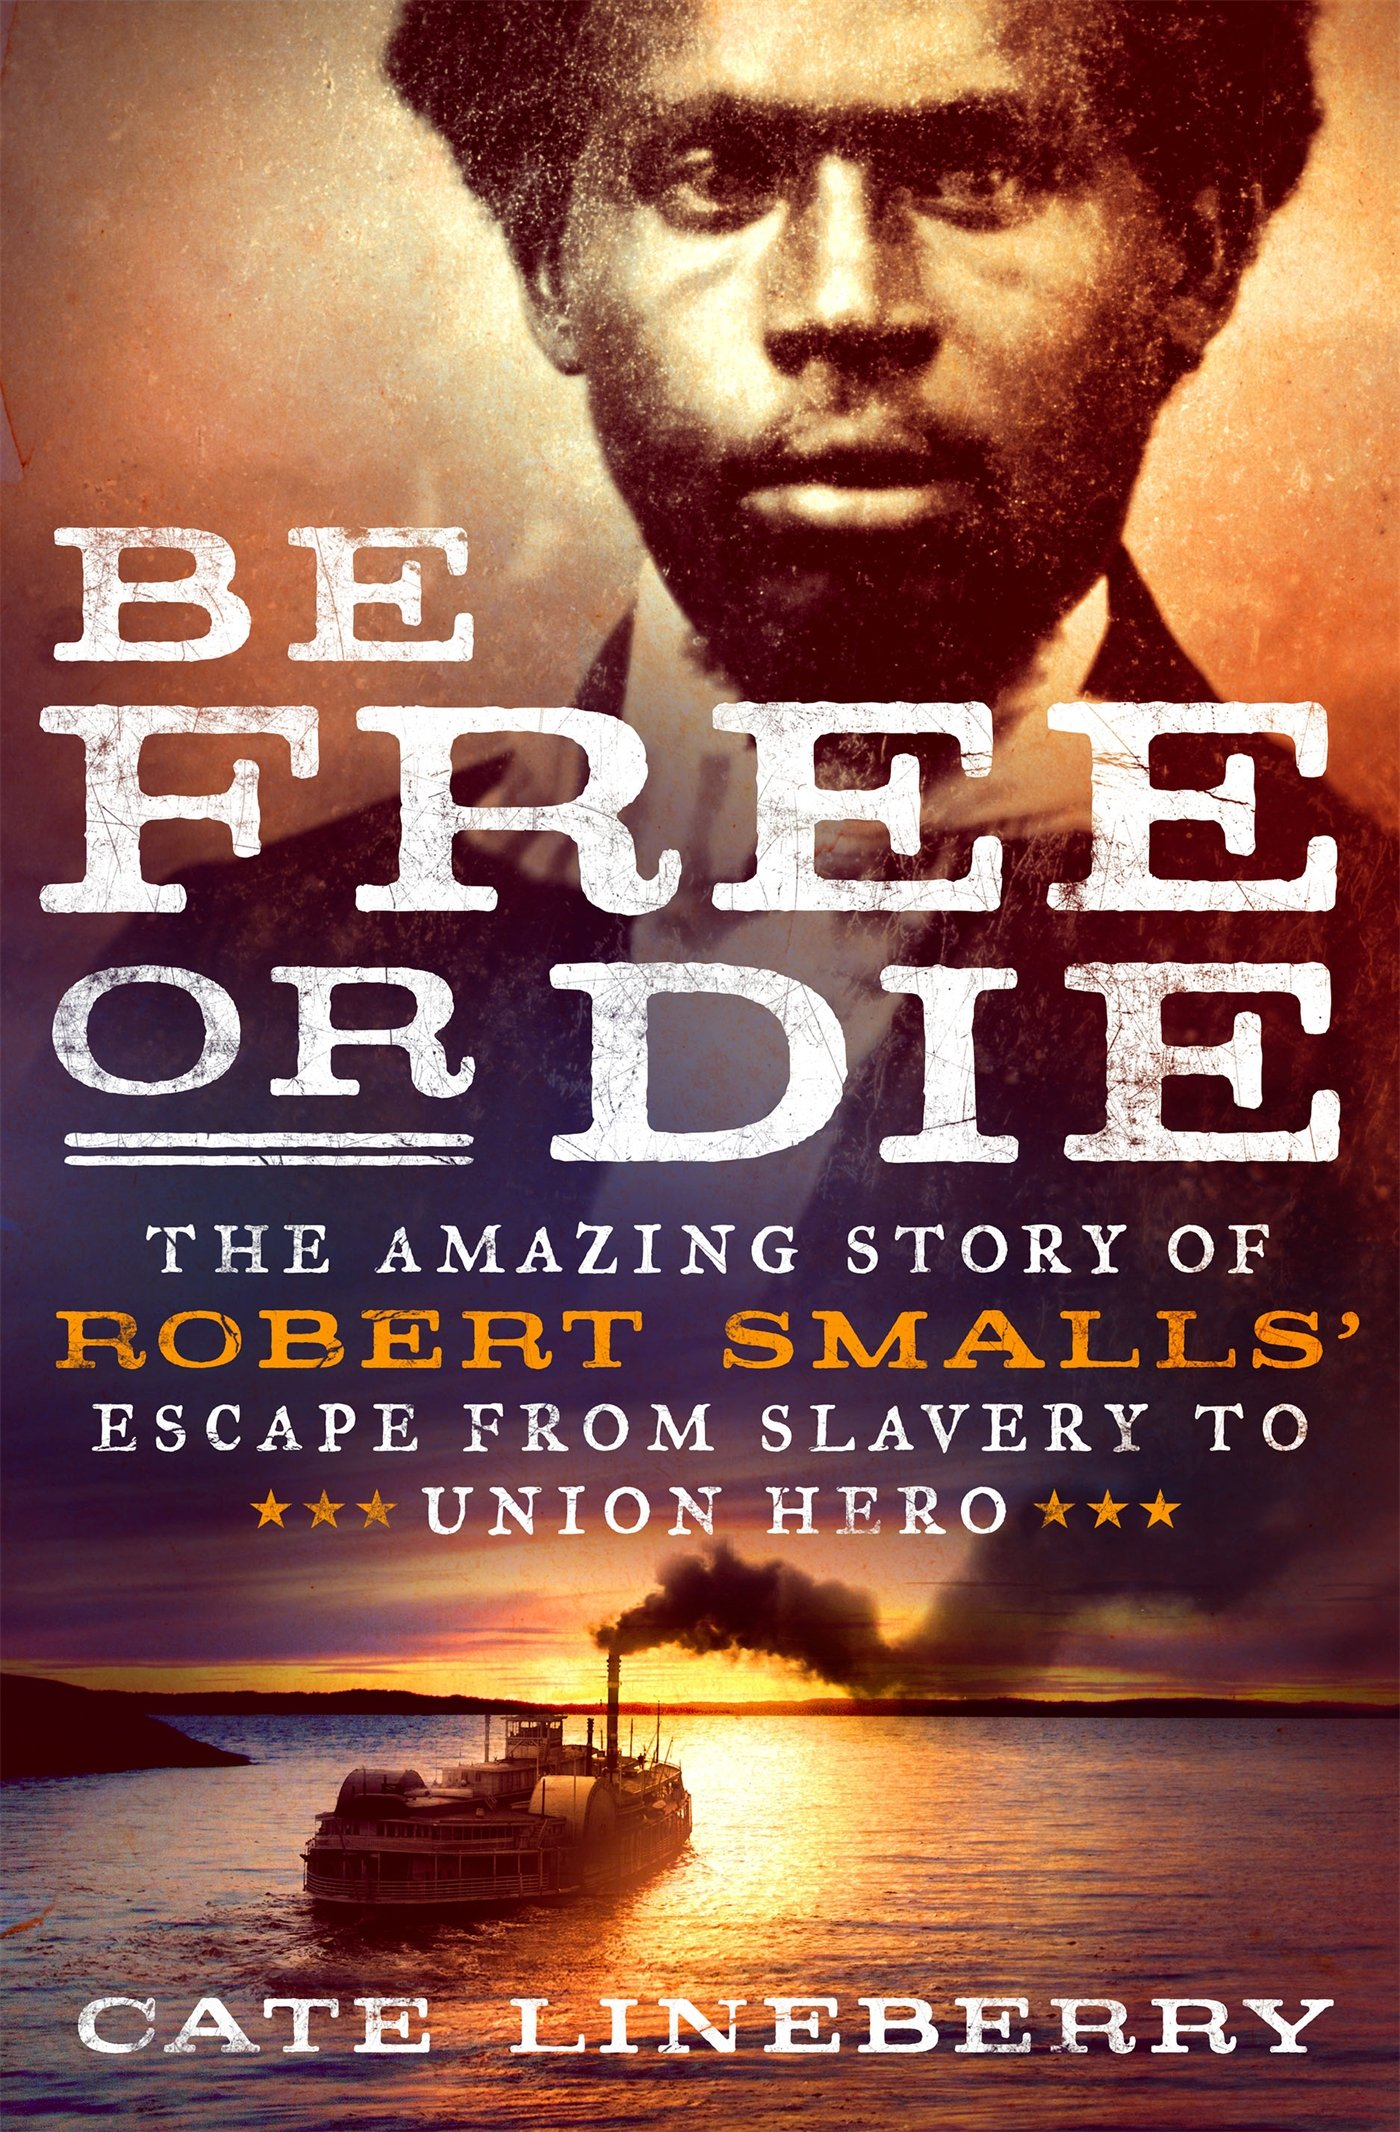 View of cover of book detailing Robert Smalls' life